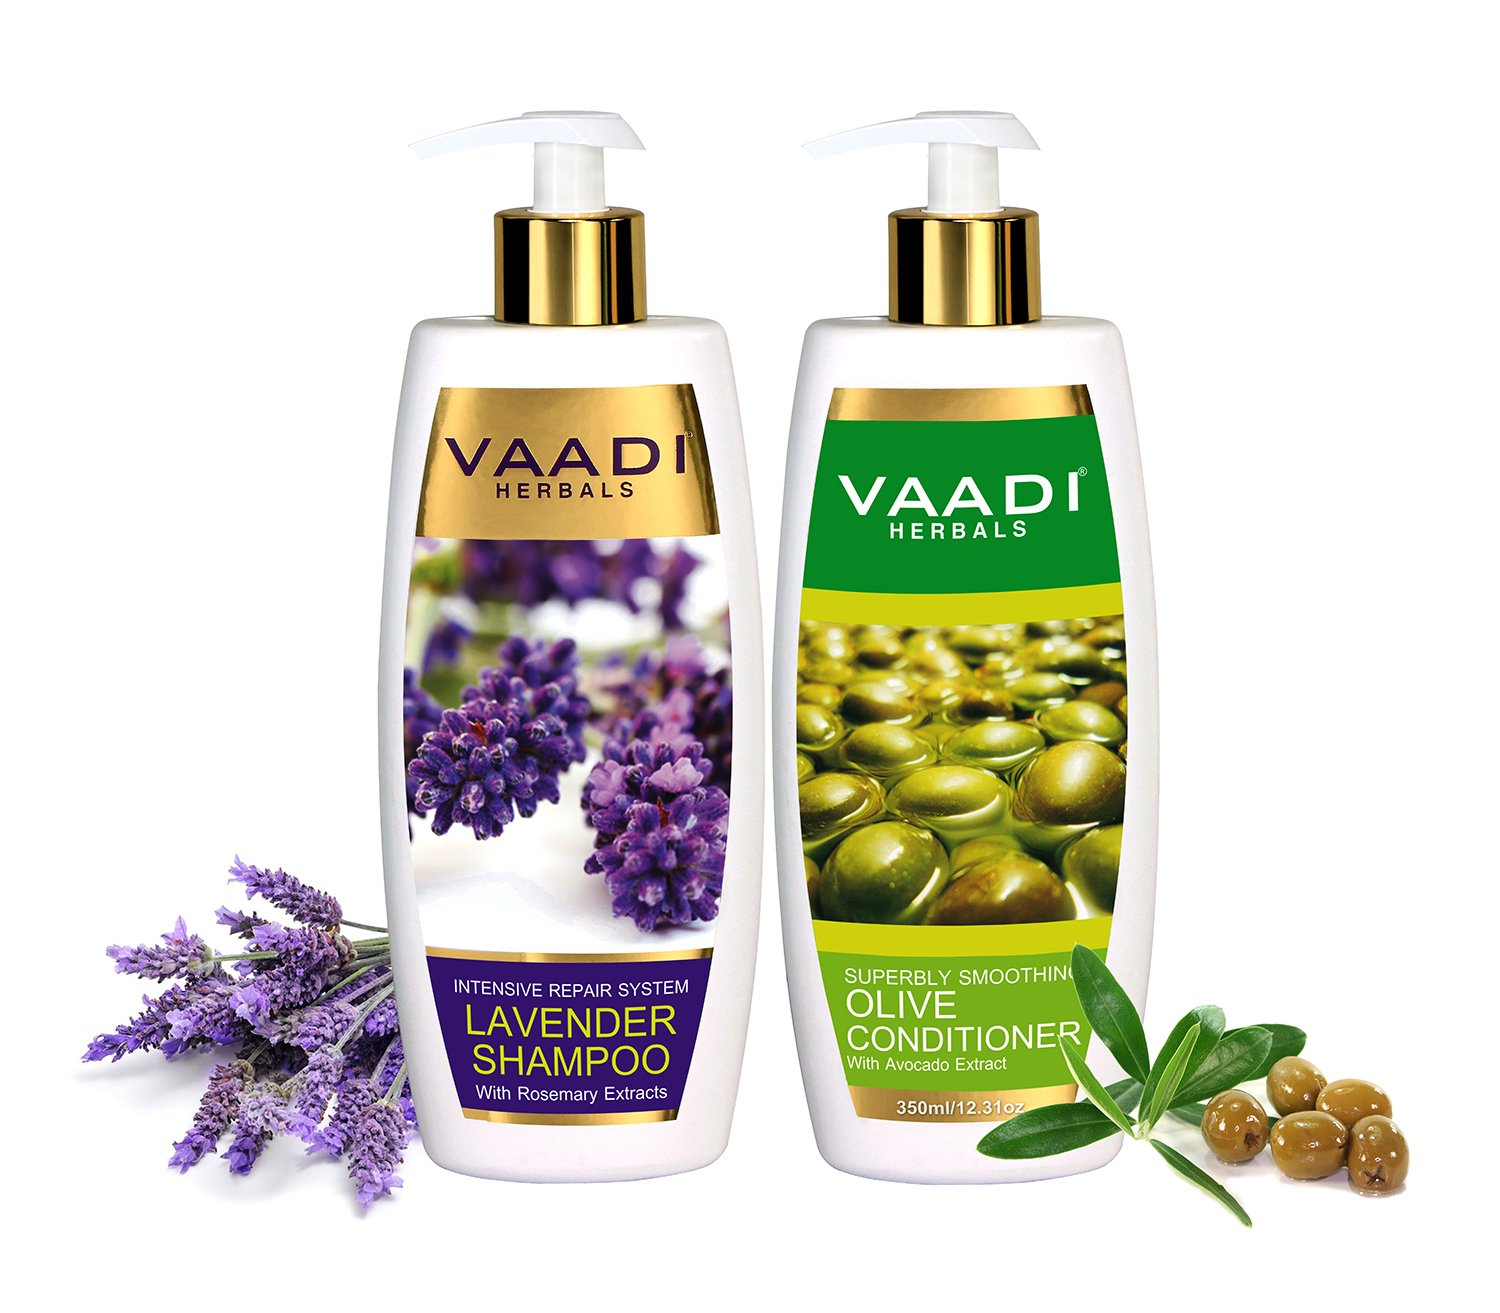 Lavender with Rosemary Extract Shampoo and Olive Conditioner Intensive Repair Shampoo ALL Natural Paraben Free Sulfate Free Scalp Therapy Moisture Therapy Suitable for All Hair Types - Each Pack of 350ml - Each 11.8 Oz - Vaadi Herbals